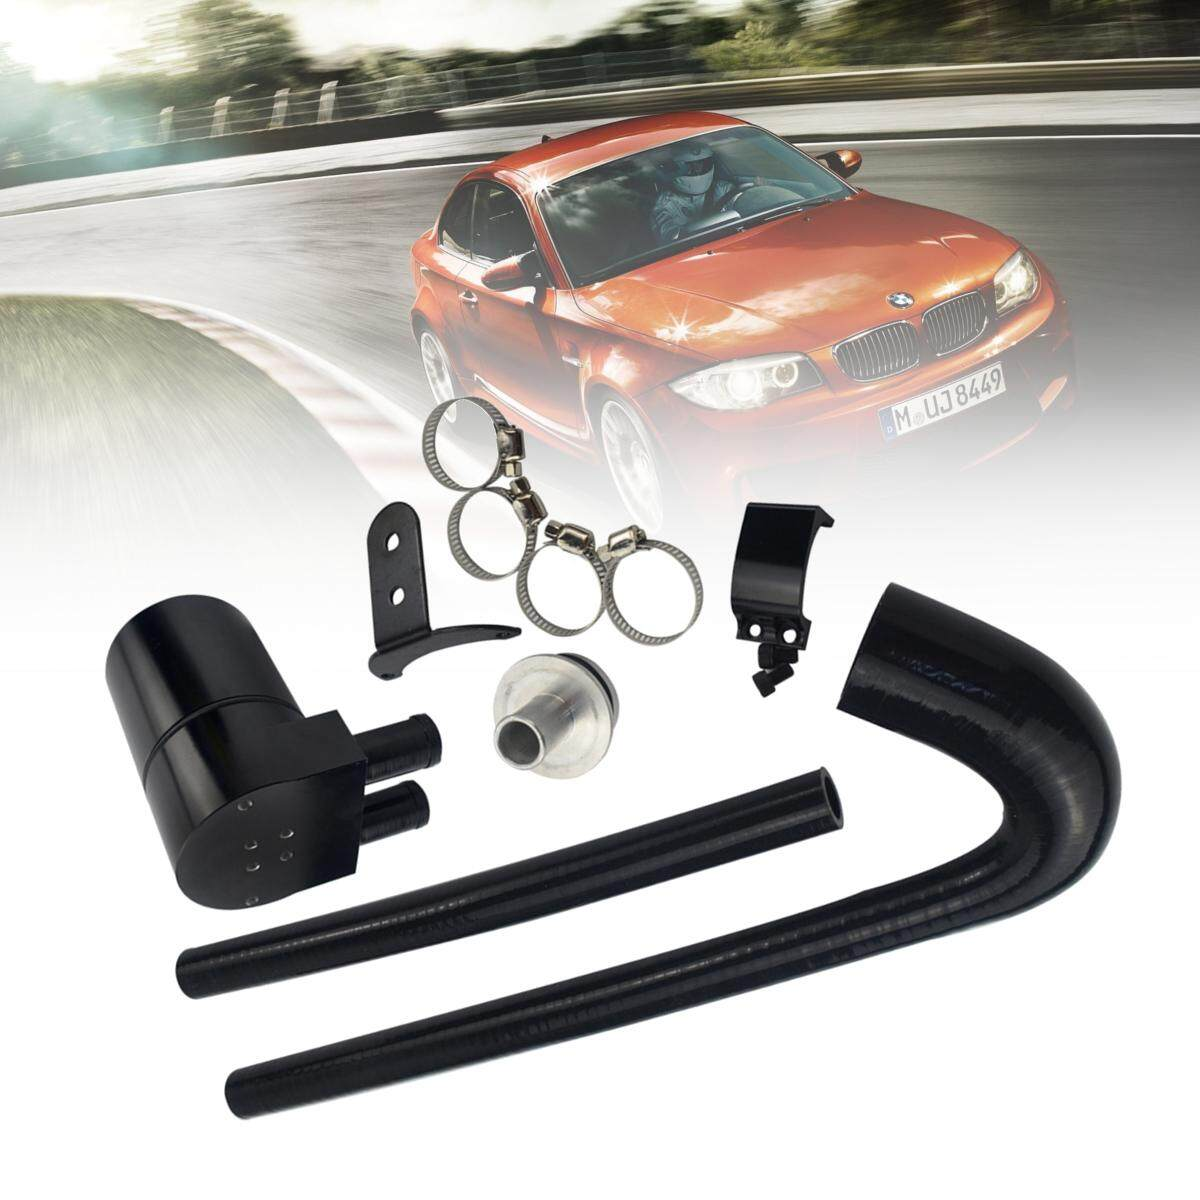 EGR for sale - EGR Pipes online brands, prices & reviews in